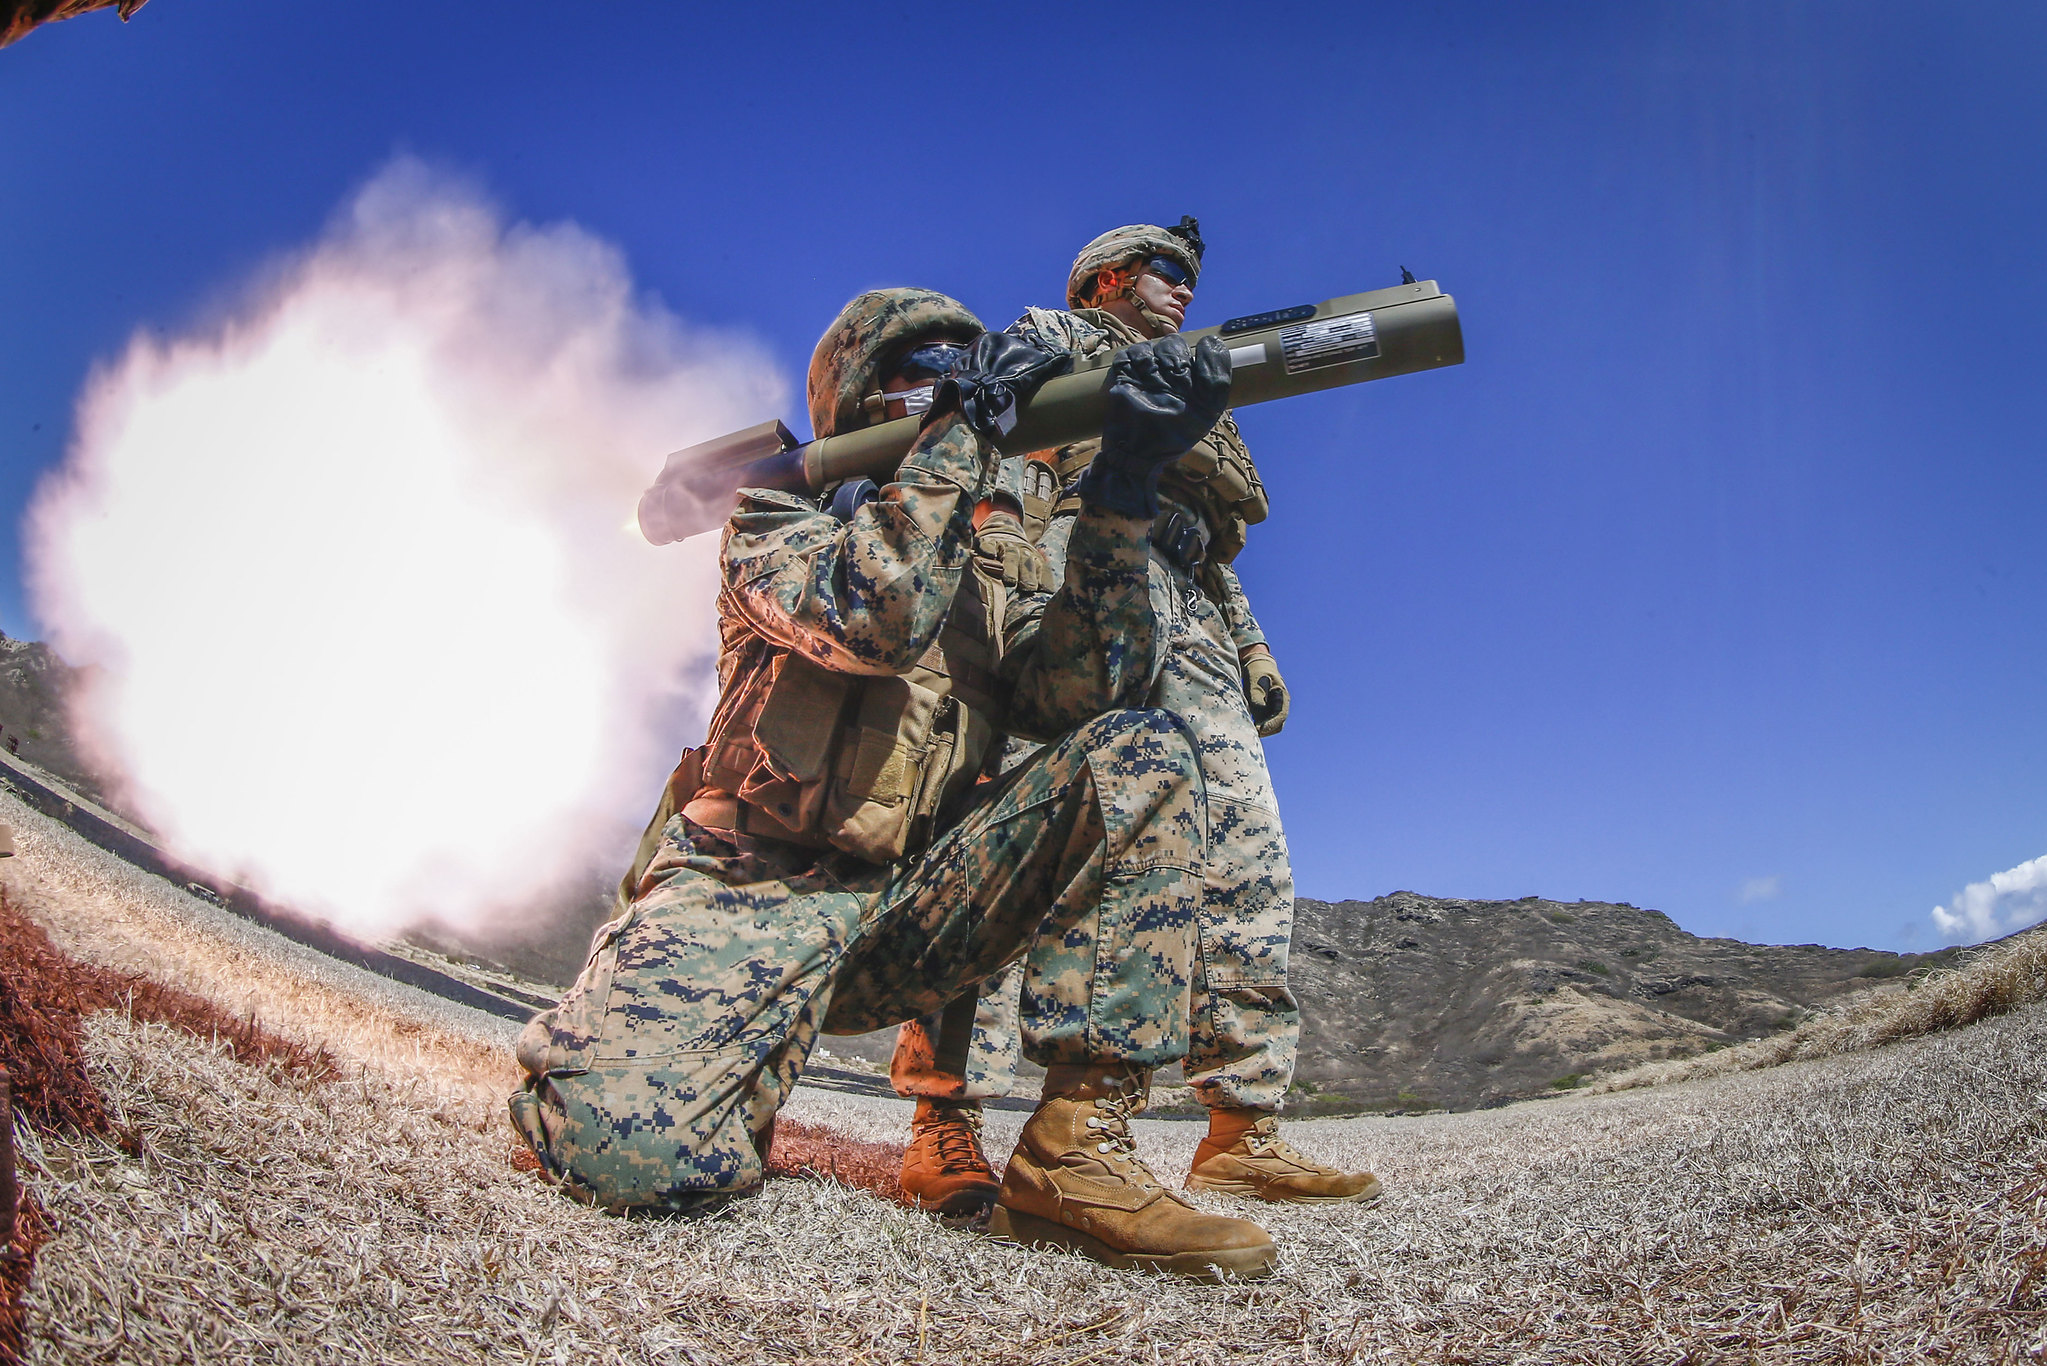 Sgt. Isaac Zimmerman observes as a Marine fire an M72 LAW weapon system at Marine Corps Base Hawaii, Aug. 13, 2020. (Sgt. Luke Kuennen/Marine Corps)